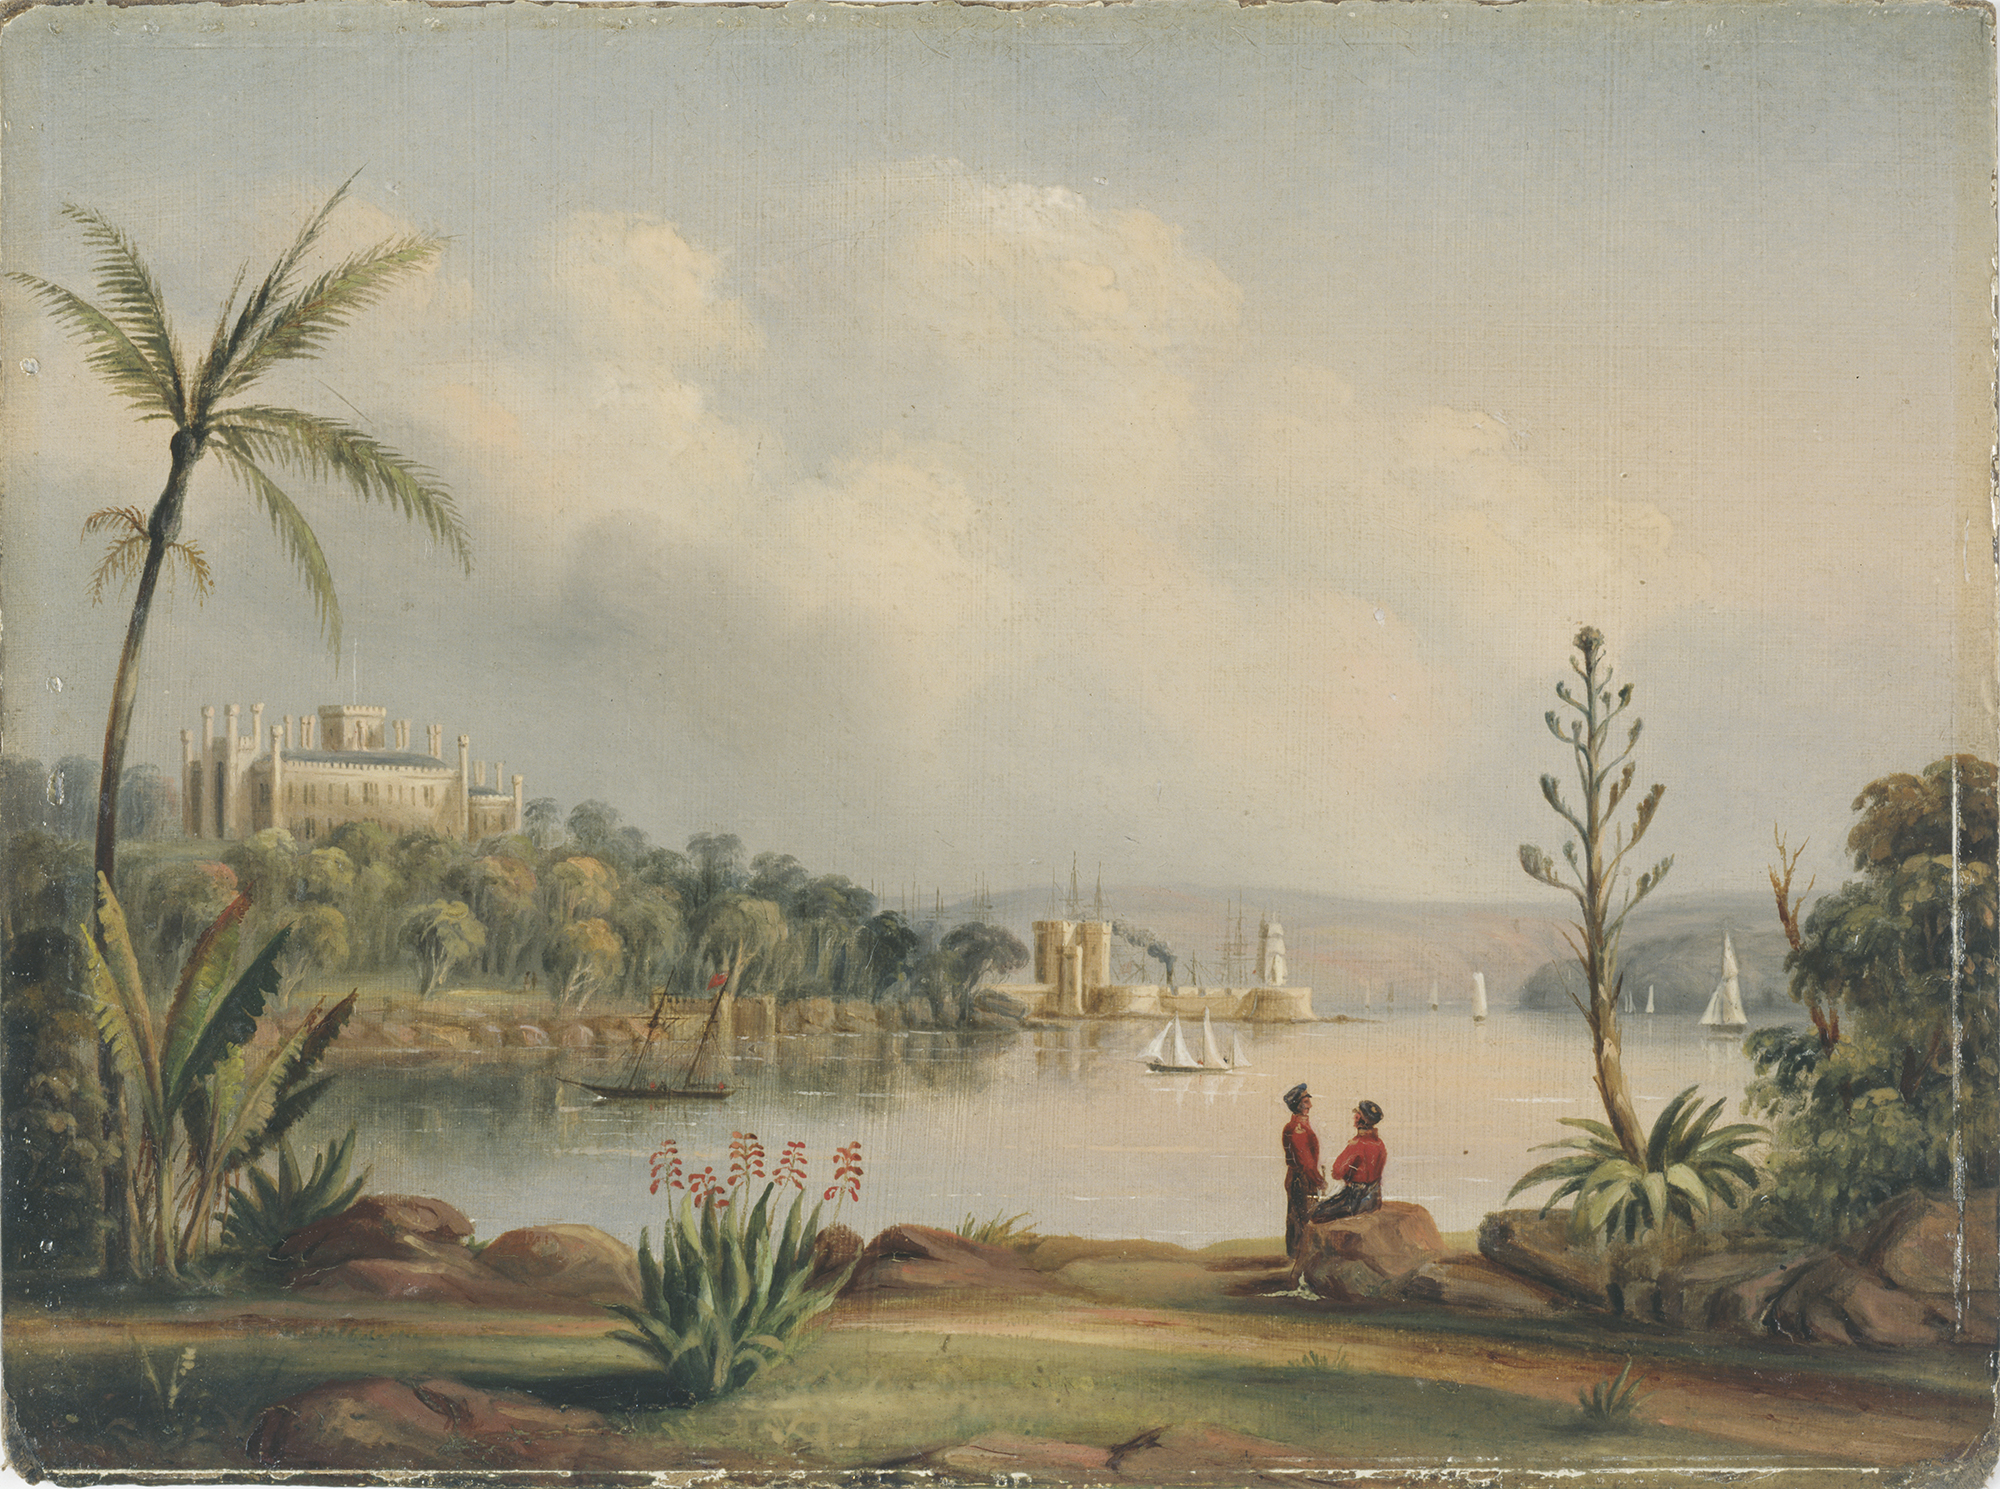 A painting: two soldiers in colonial military dress sit on a rock in the foreground looking across the harbour toward Government House, the top of which appears above the trees on the far shore. Sailboats are dotted across the water.